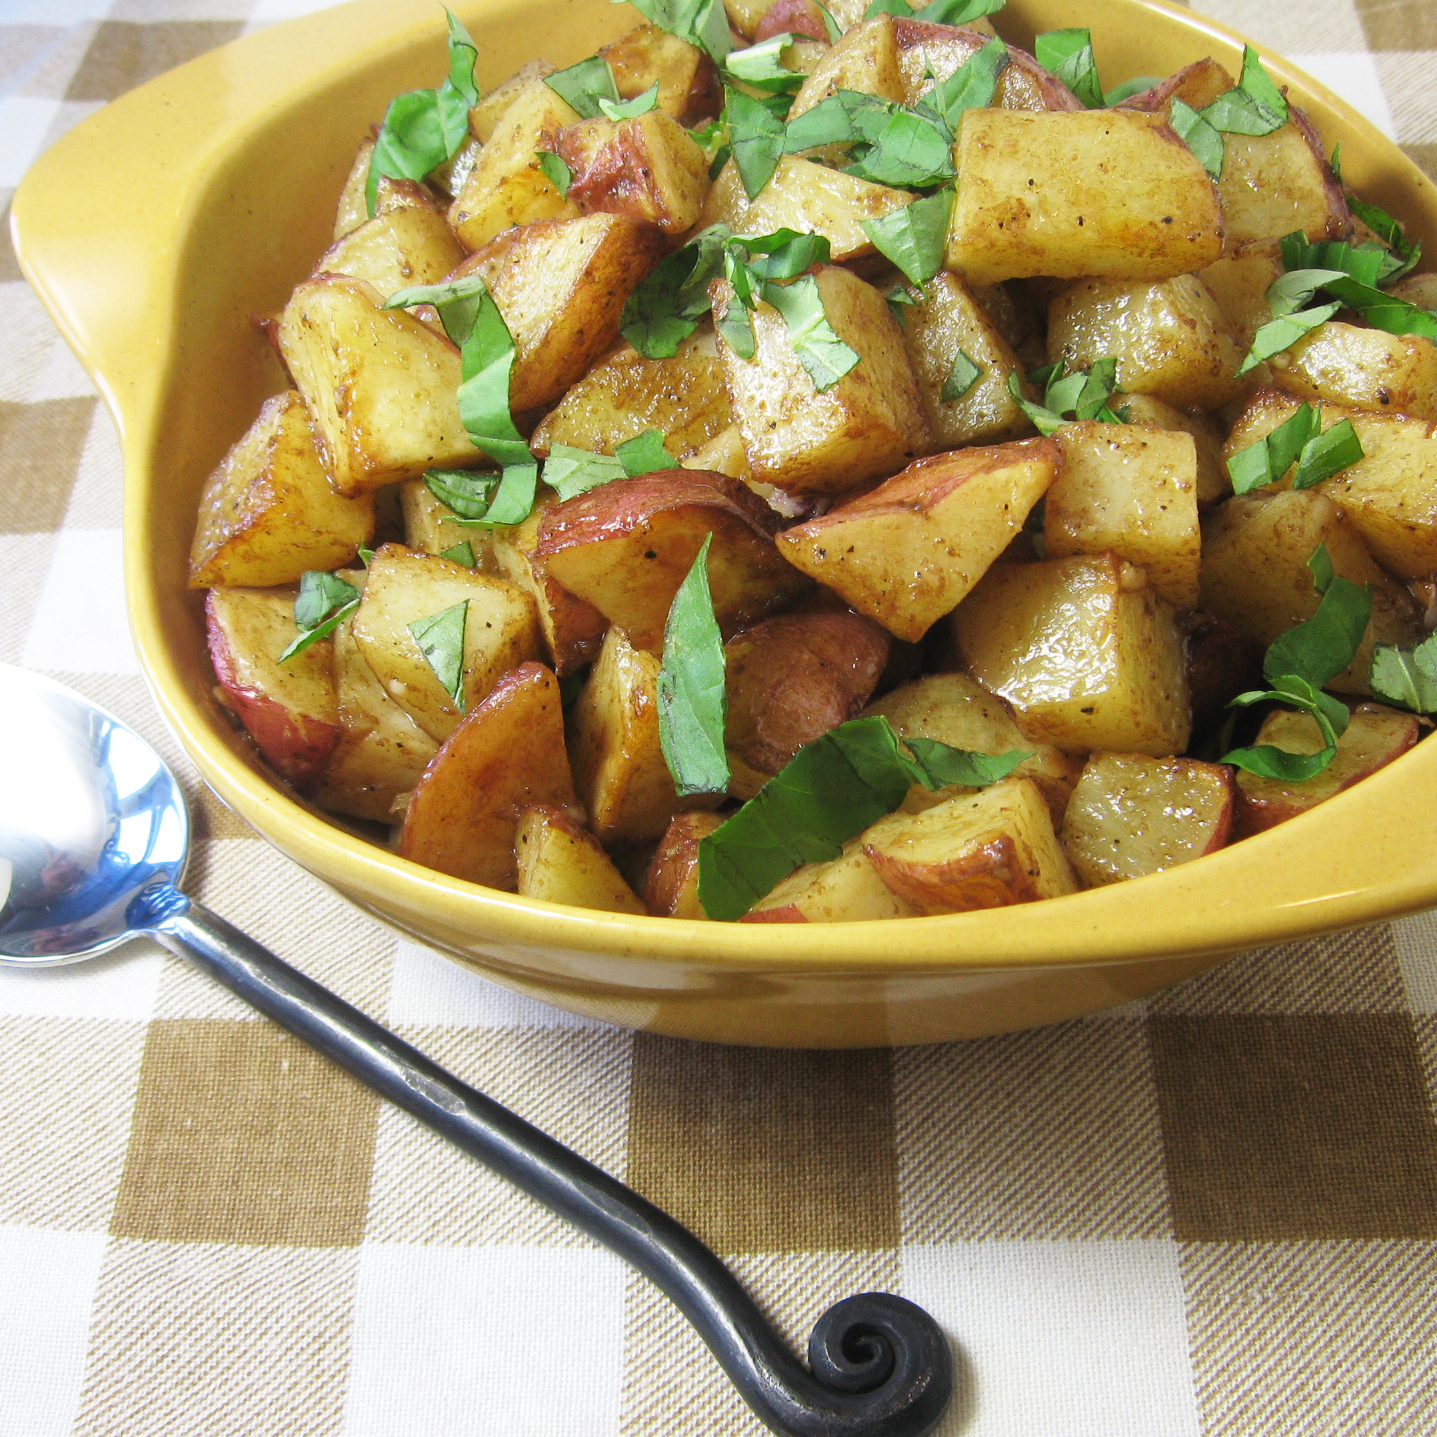 Warm Potatoes With Basil Vinaigrette Recipes — Dishmaps